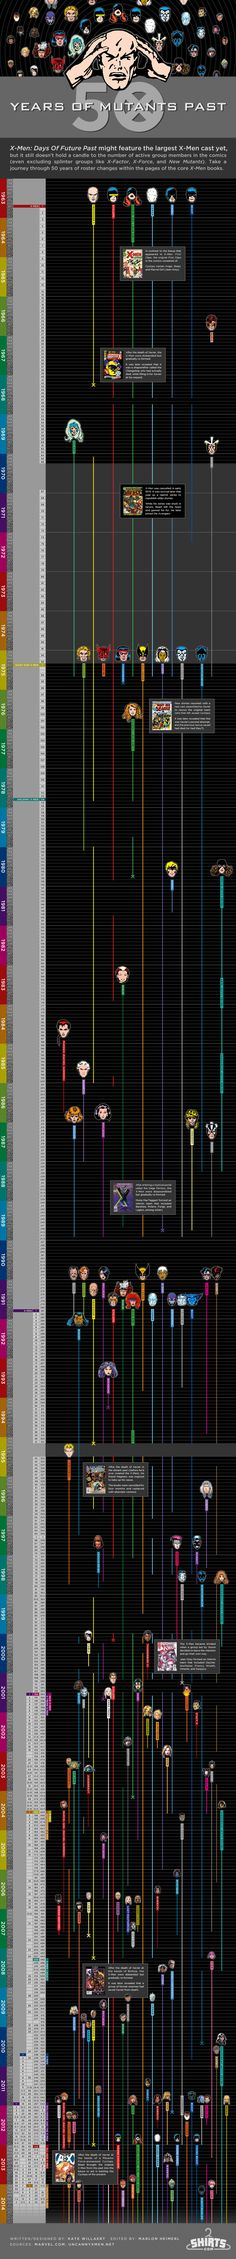 How many times did they die? 50 years of X-Men [infographic]